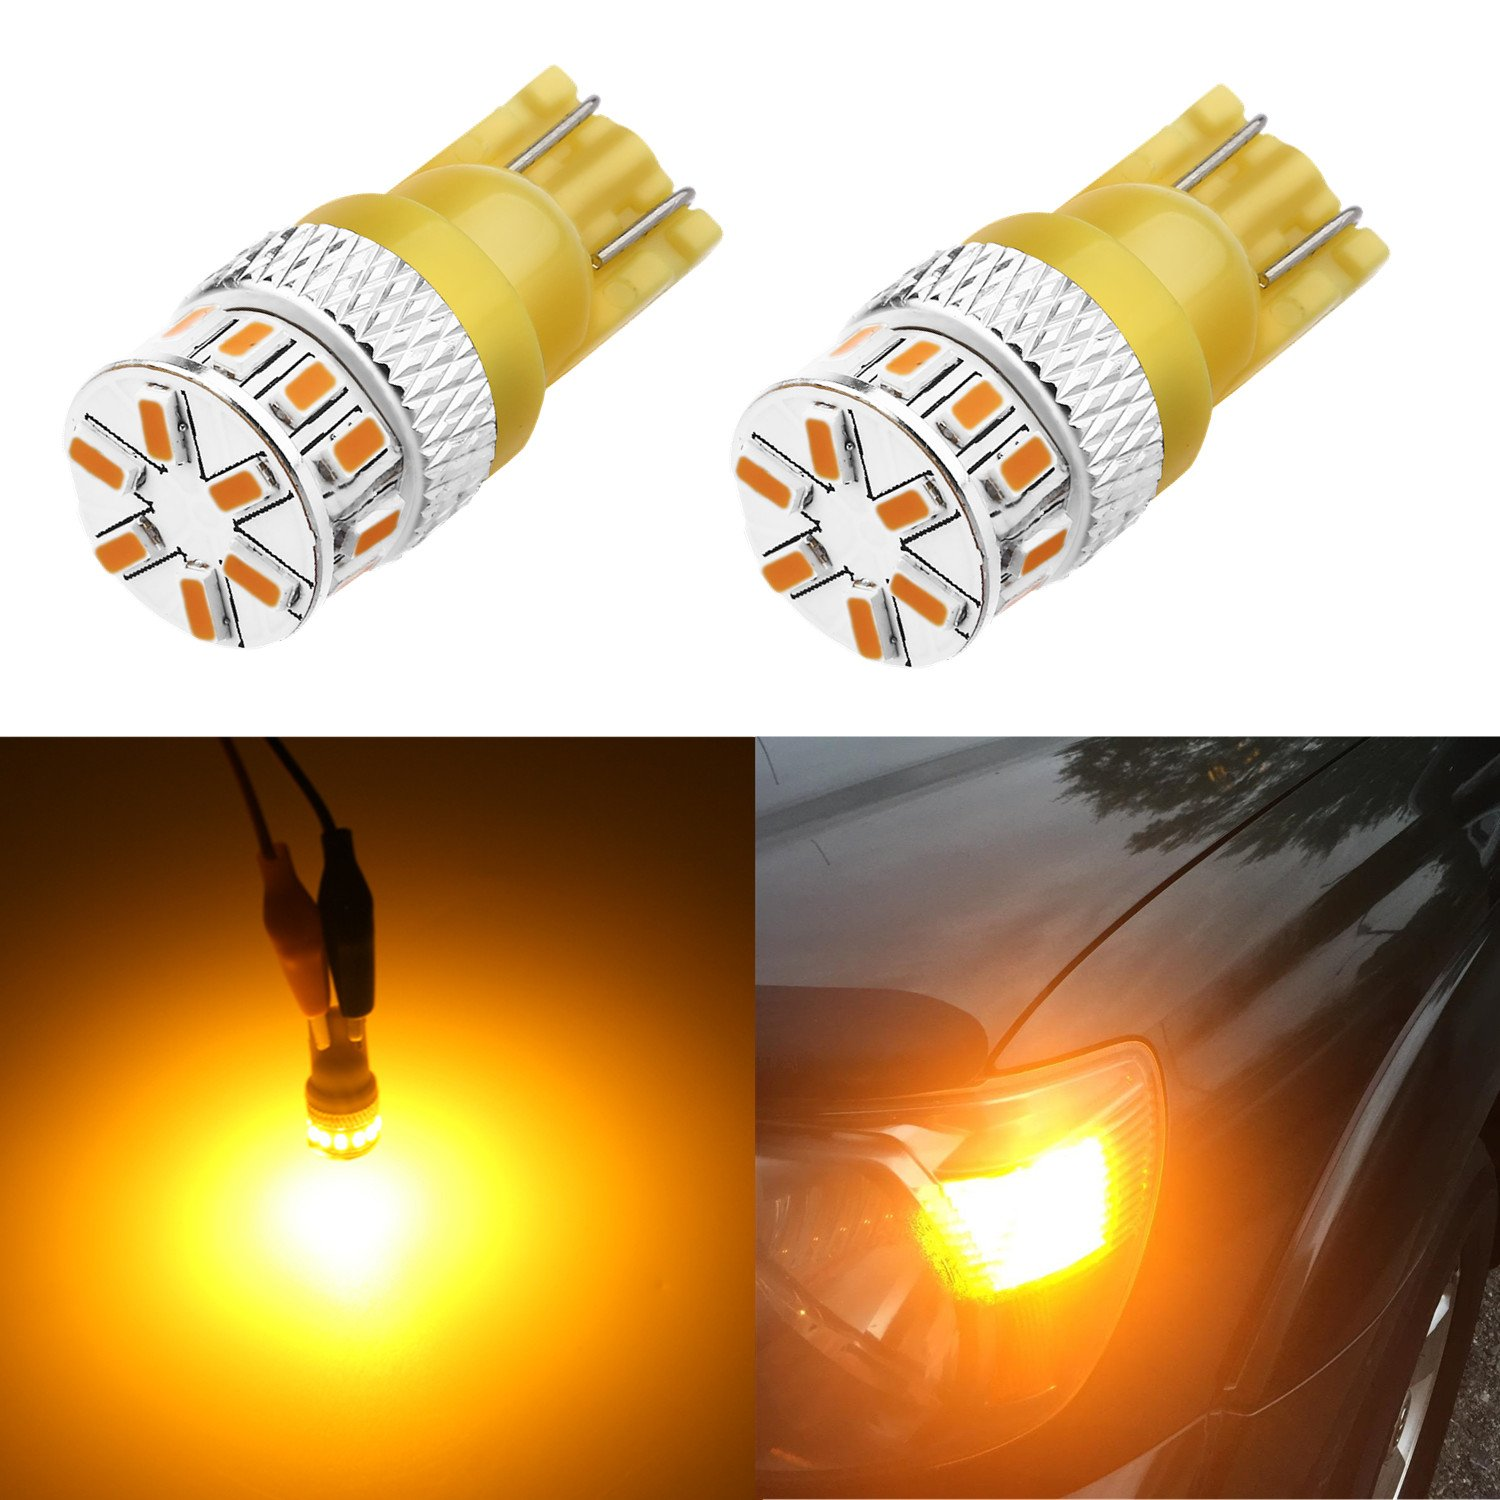 Alla Lighting Super Bright T10 194 LED Bulb High Power 3014 18-SMD 12V LED 194 168 2825 175 W5W Bulb Wedge for License Plate Interior Map Dome Trunk Cargo Side Marker Light, Amber Yellow (Set of 2)